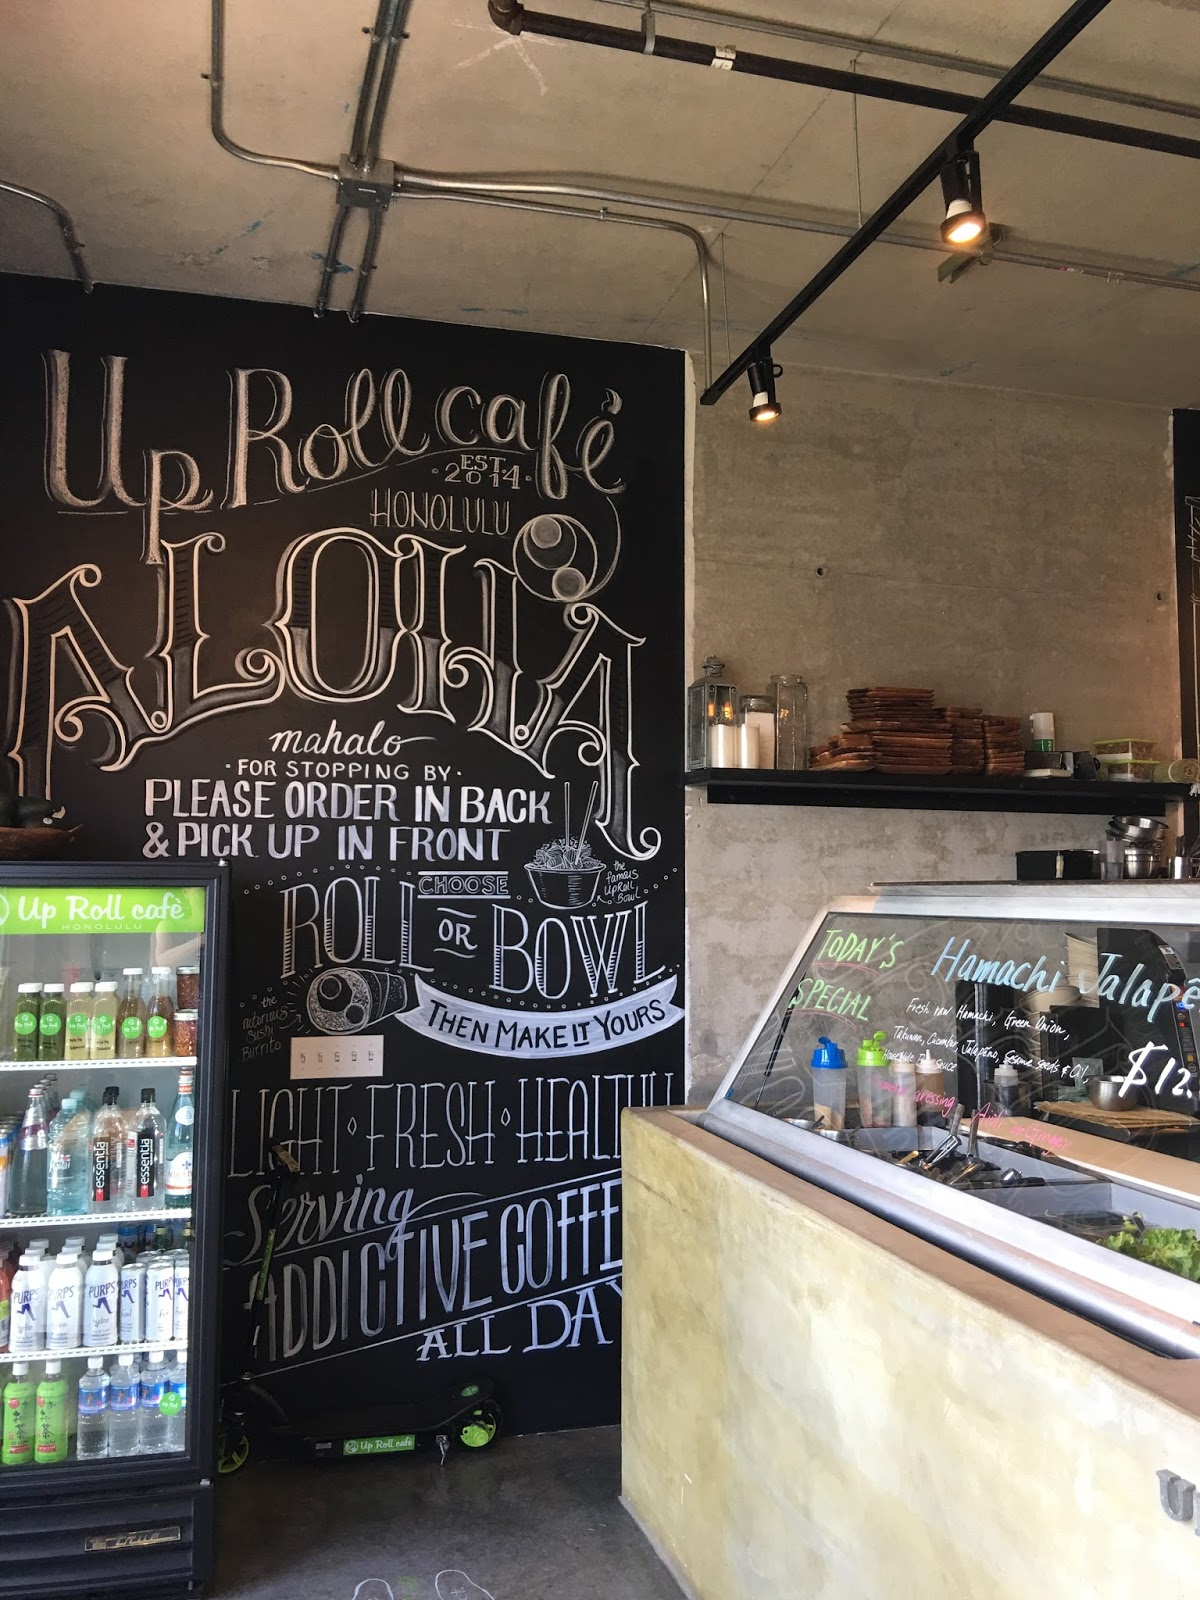 hawaii mom blog: up roll cafe